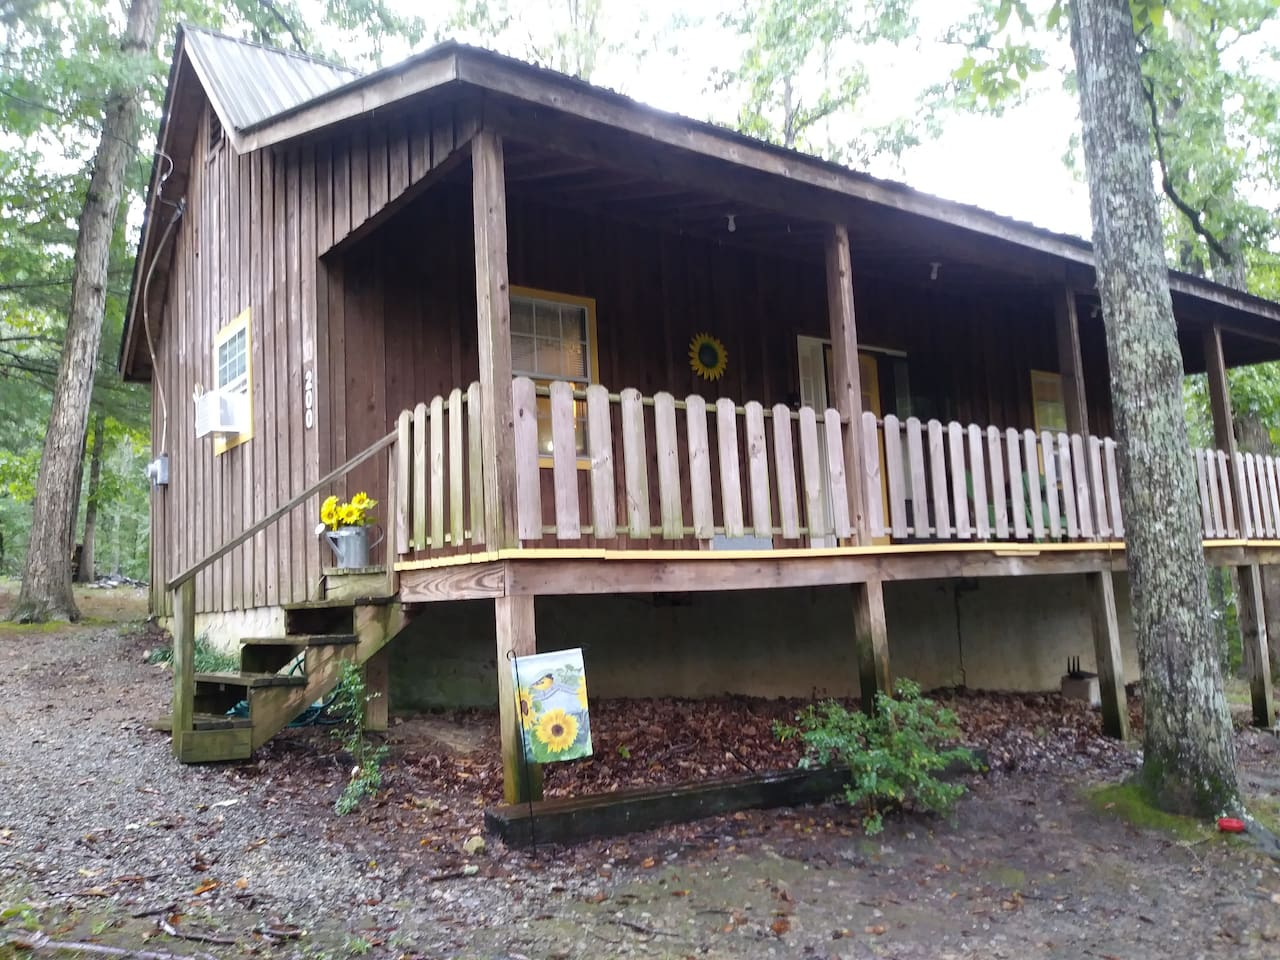 Sunnyside Cabin OUR NEWEST ADDITION! SEPTEMBER 2018  COME ENJOY PURE COUNTRY